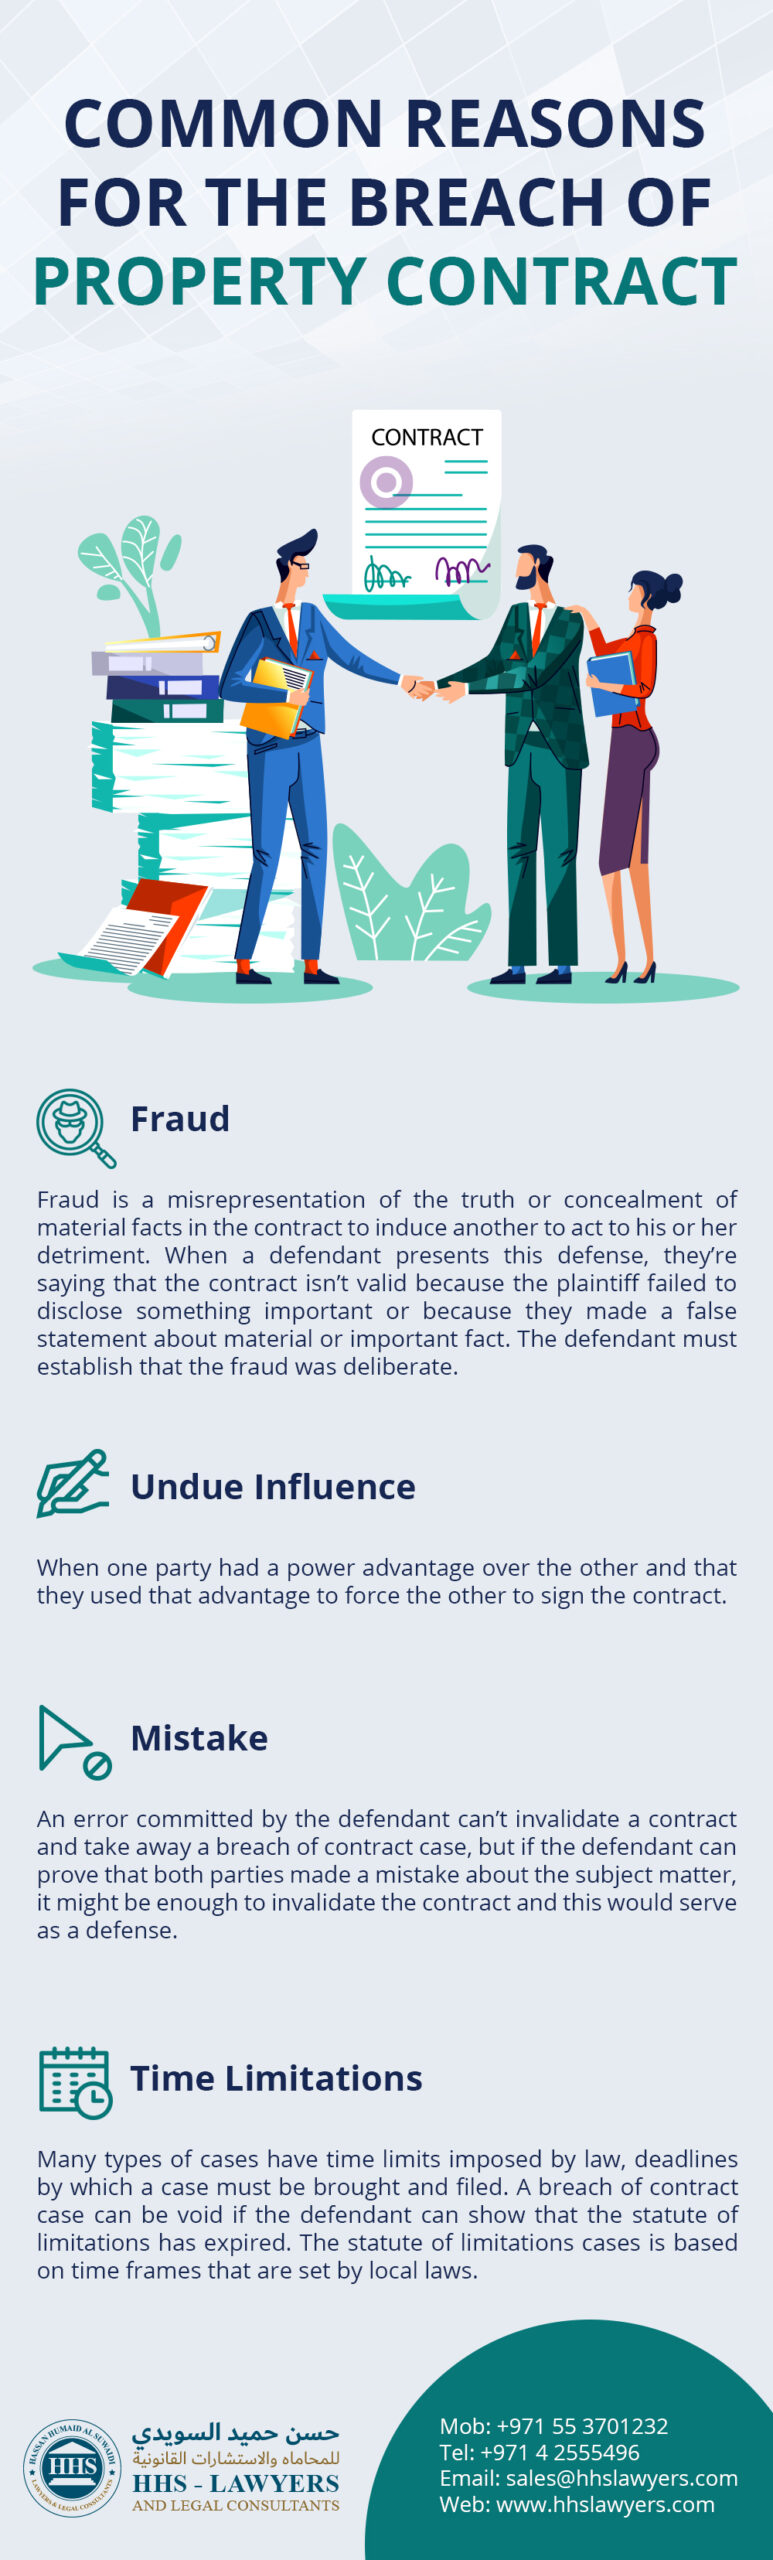 Common Reasons for the Breach of Property Contract.jpg